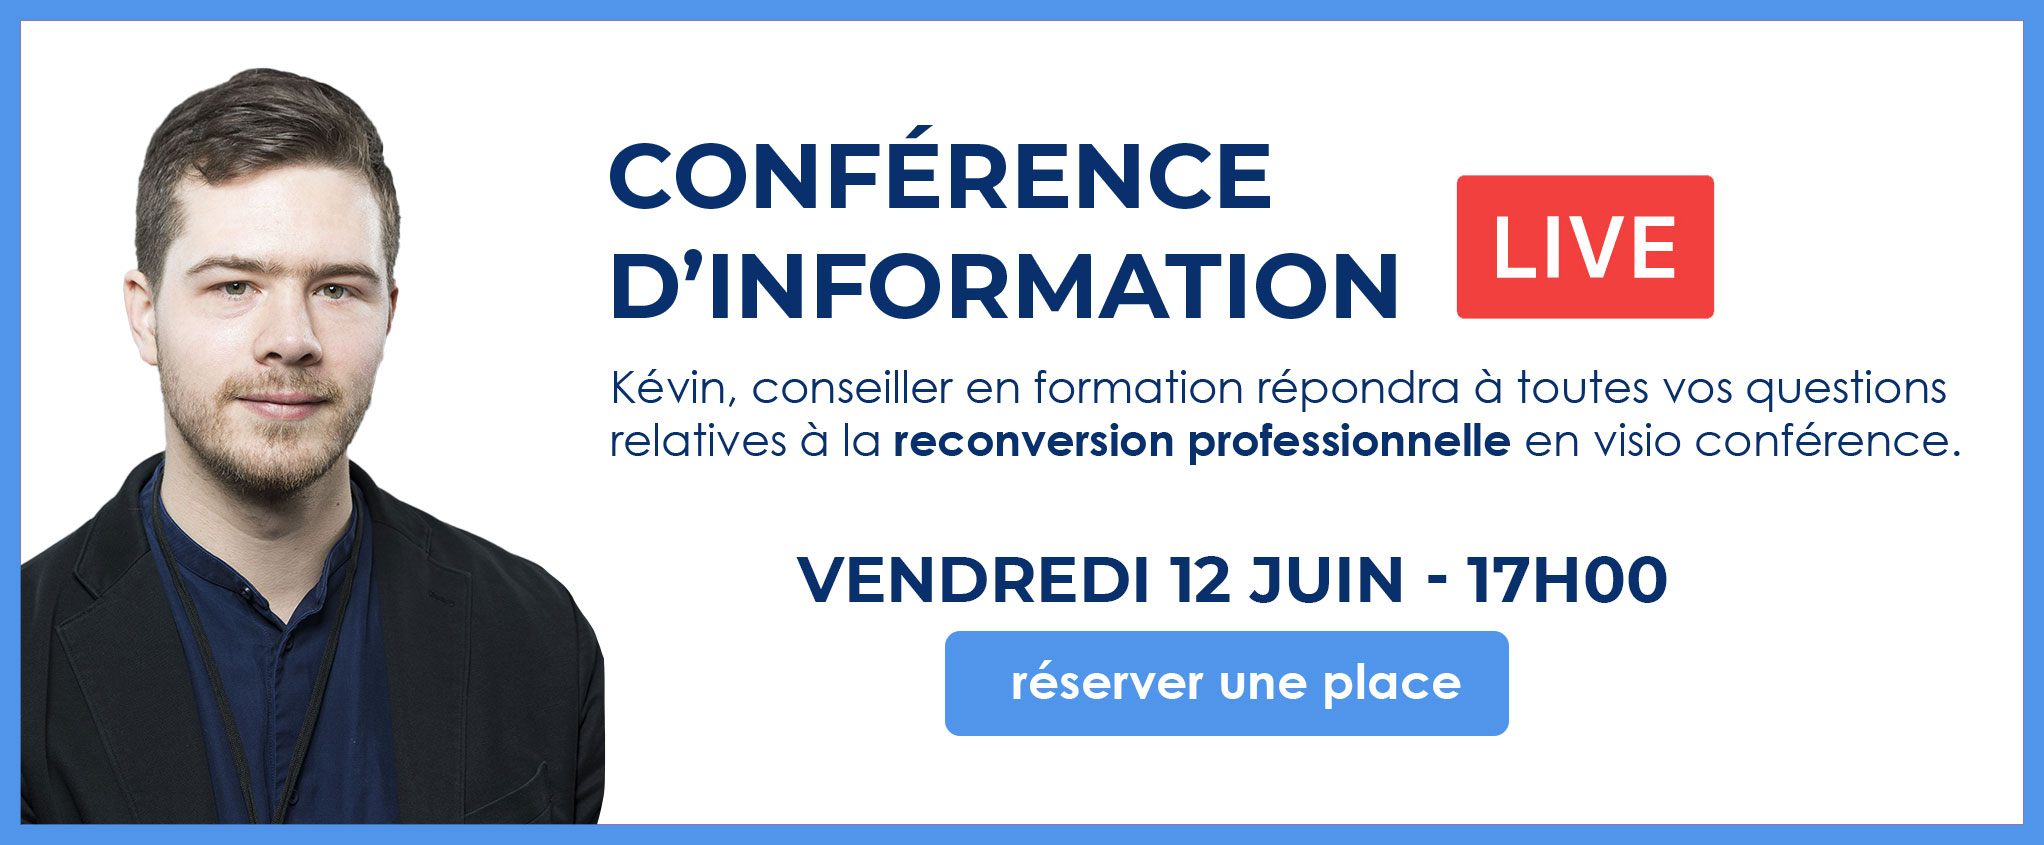 Conference reconversion pro mjm